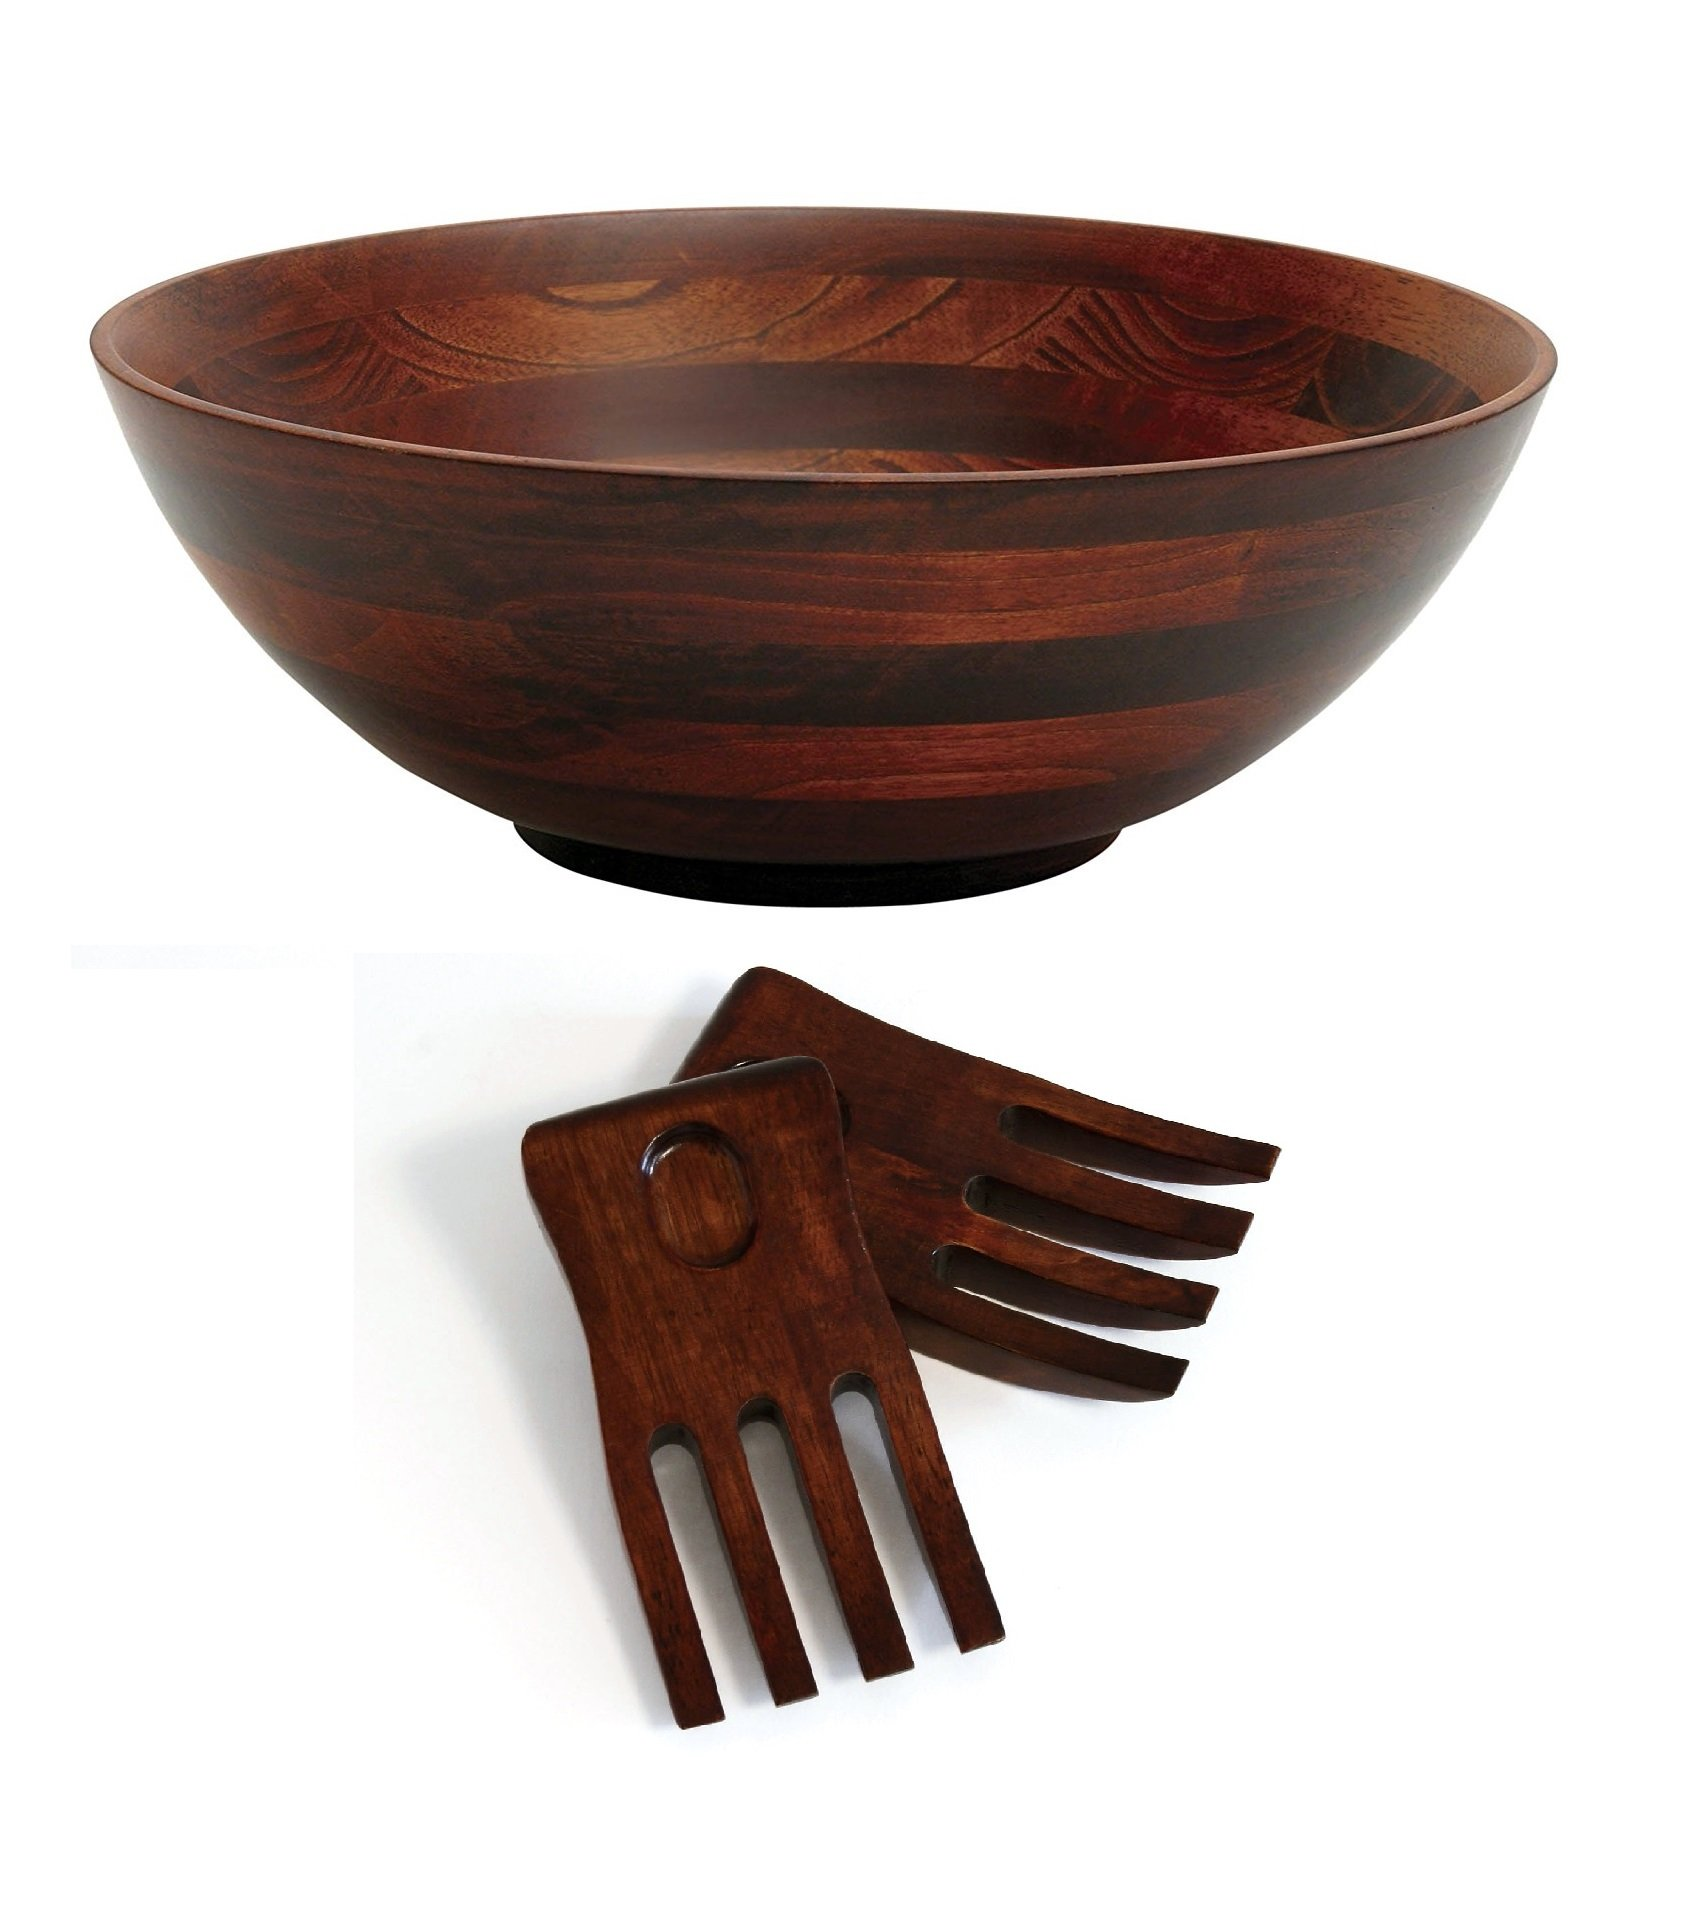 Lipper International 274-3 Cherry Finished Footed Serving Bowl with 2 Salad Hands, Large, 13.75'' Diameter x 5'' Height, 3-Piece Set